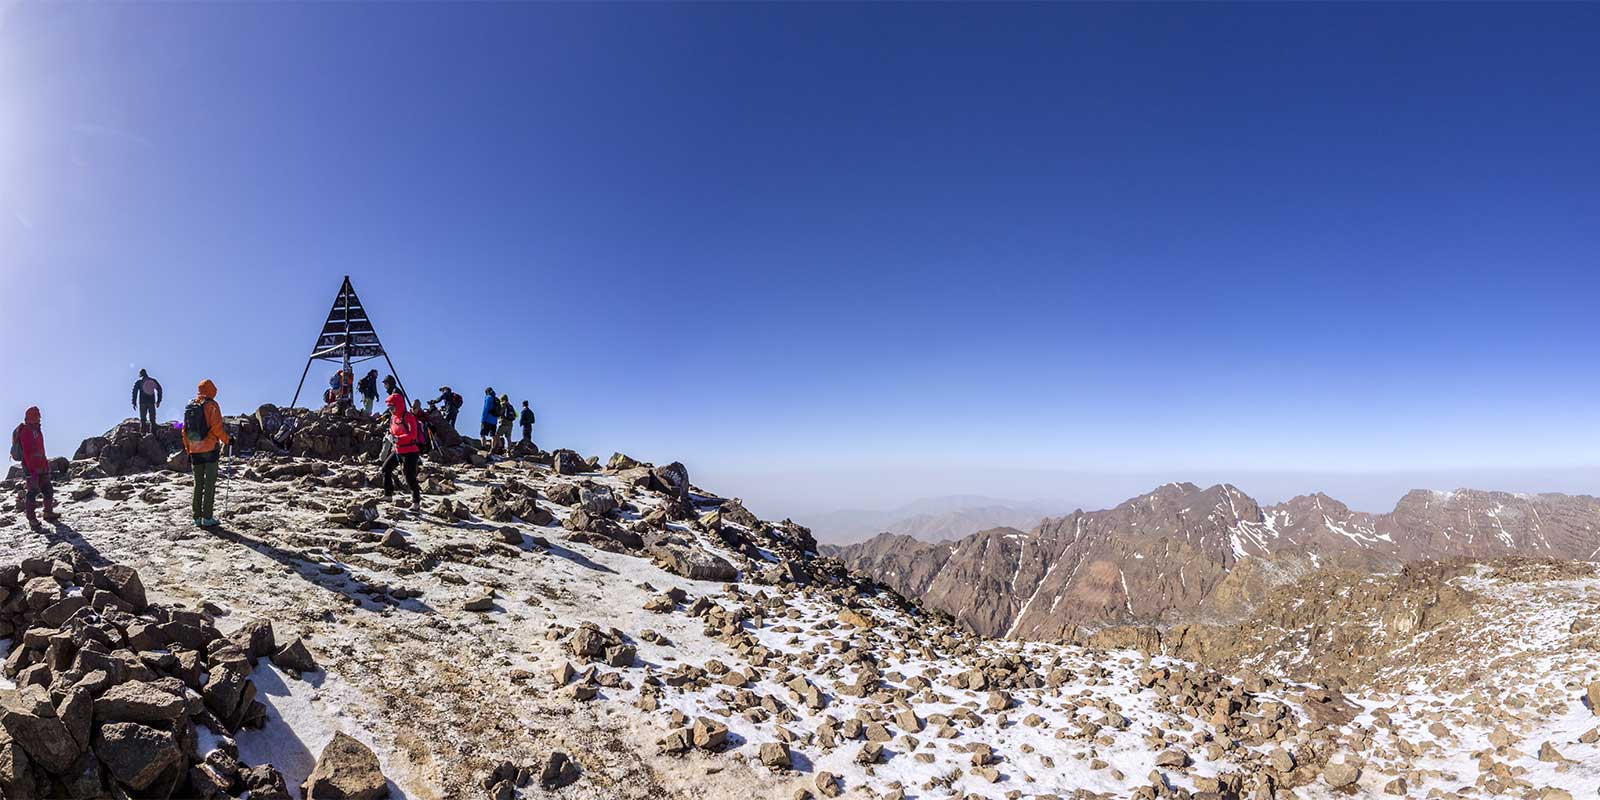 Trekkers at Mount Toubkal snow-covered summit with mountain scenery